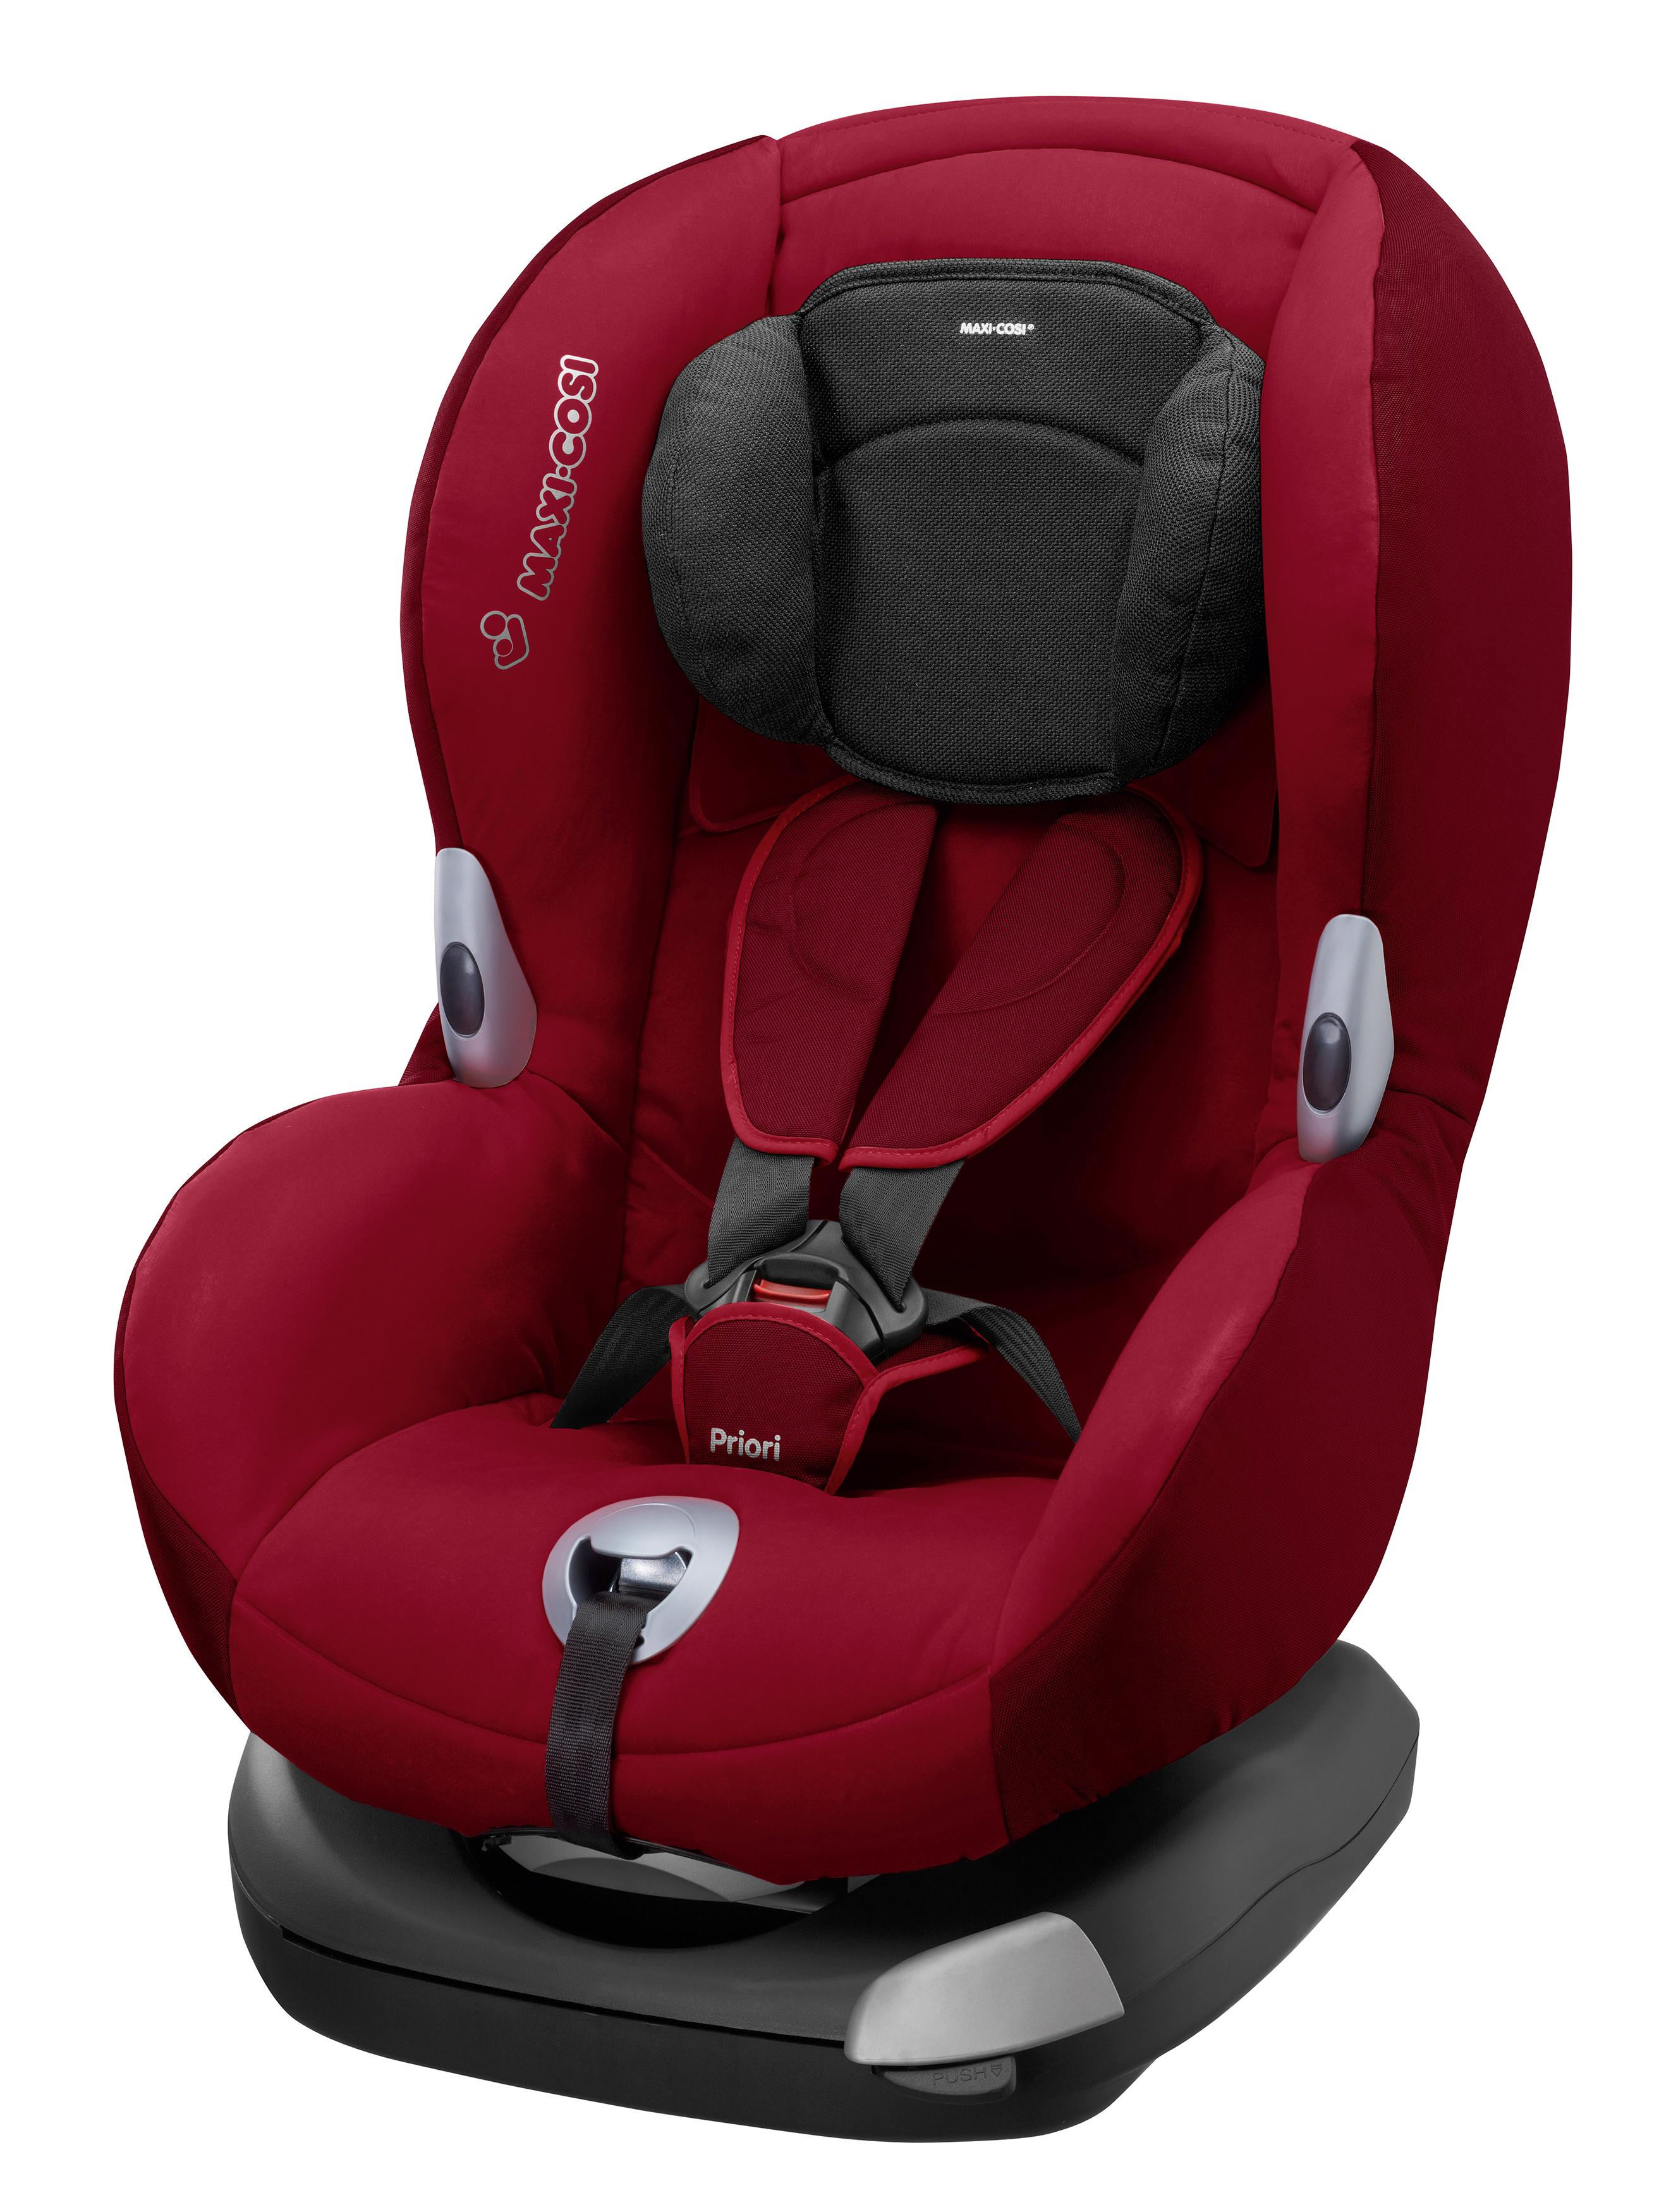 maxi cosi priori sps xp priorifix car seat support pillow. Black Bedroom Furniture Sets. Home Design Ideas